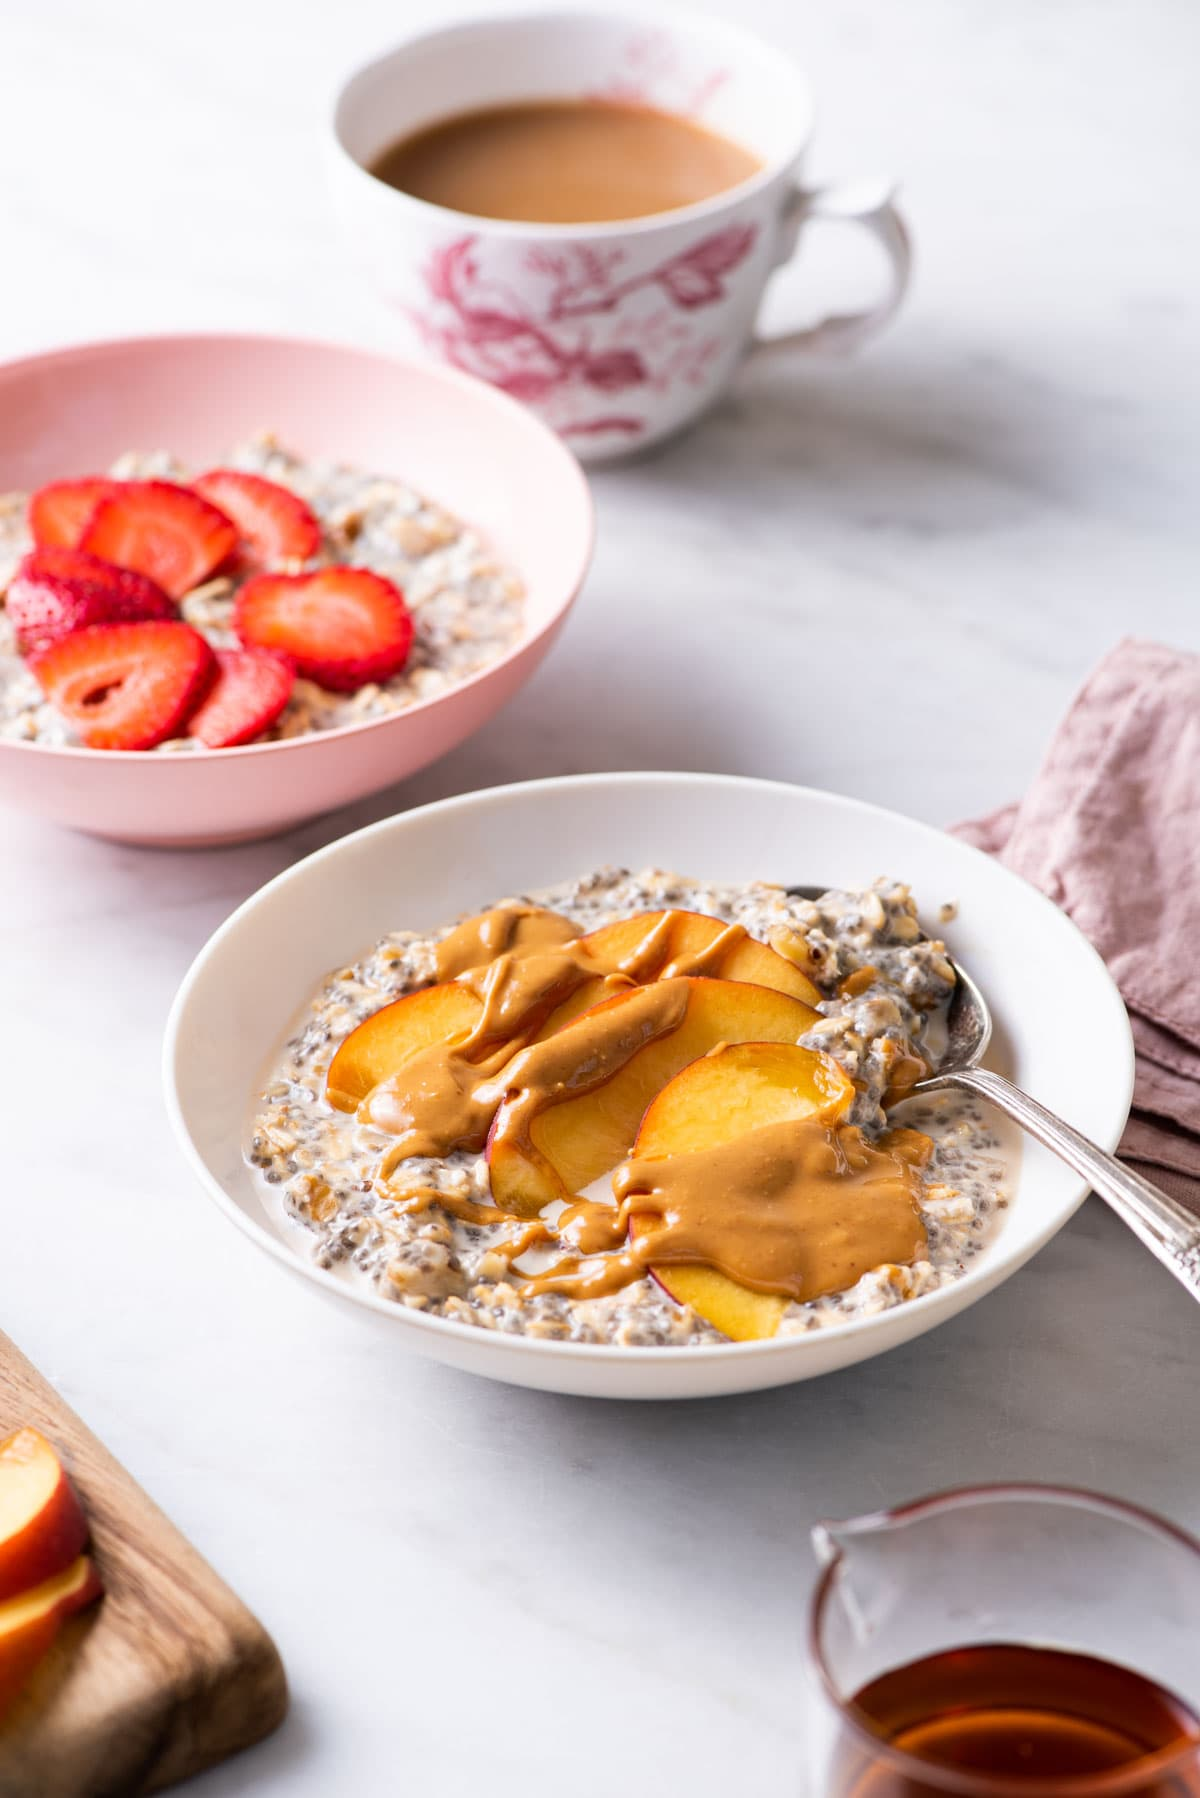 Overnight Oats with Chia Seeds | The New Baguette | #vegan #breakfastrecipes #healthybreakfast